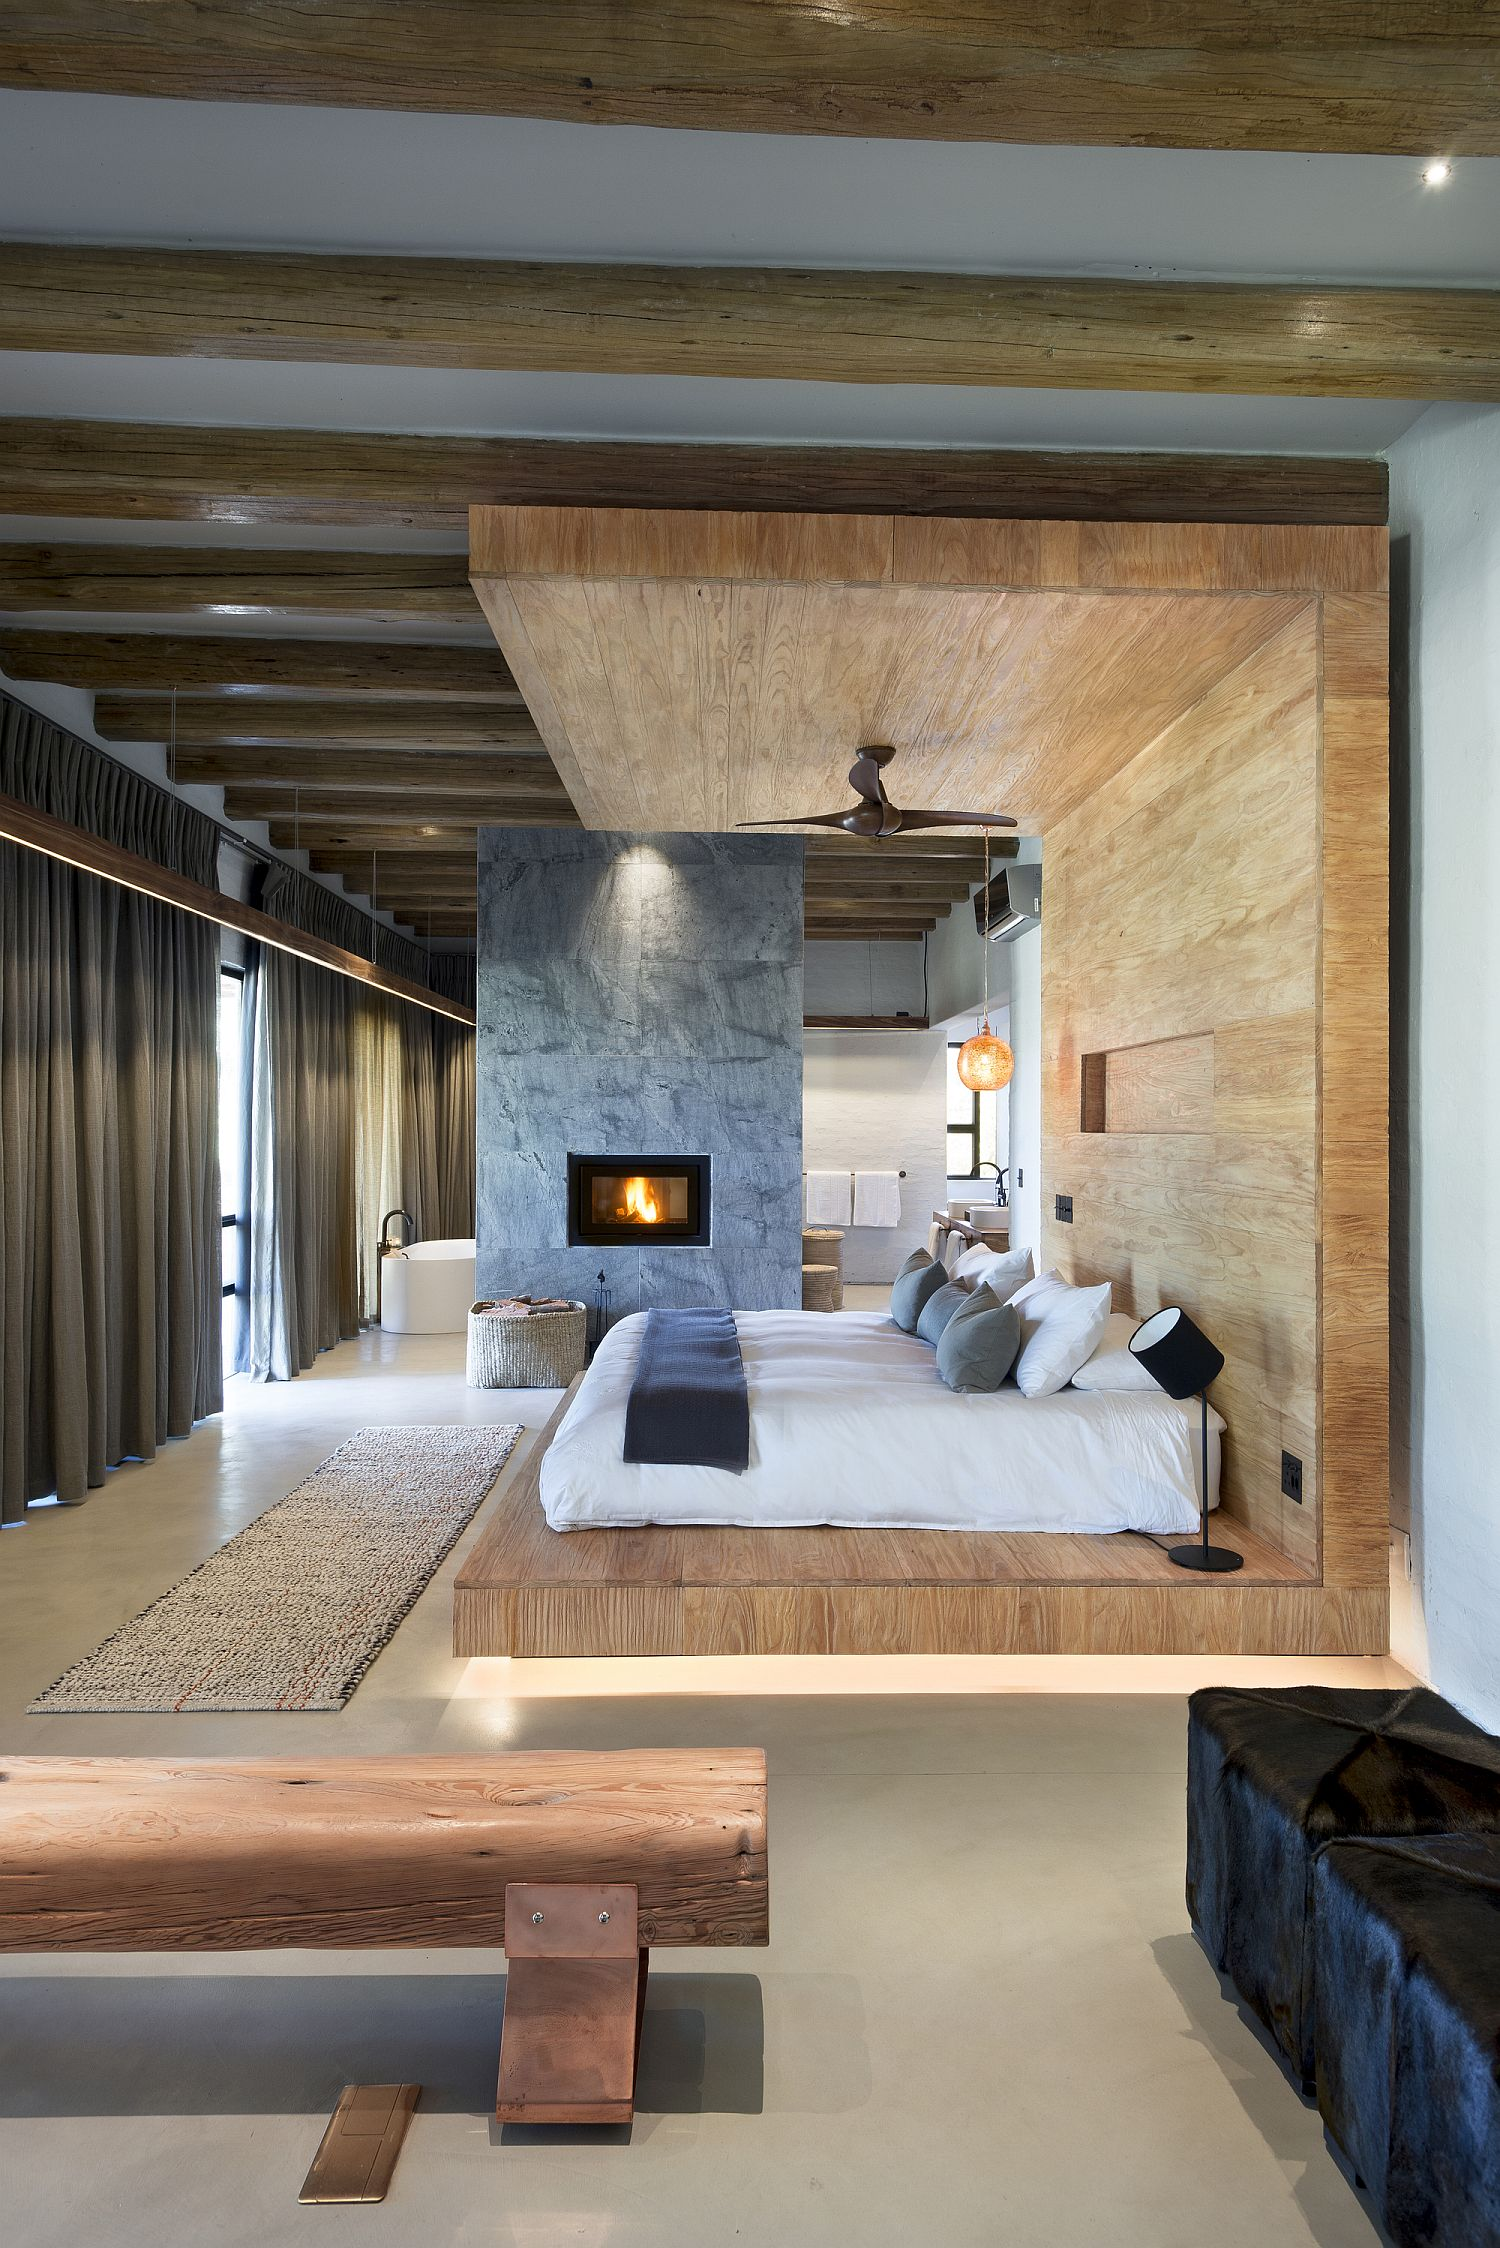 Wood-stone-and-natural-finishes-give-a-relaxing-vibe-to-the-spectacular-bedroom-here